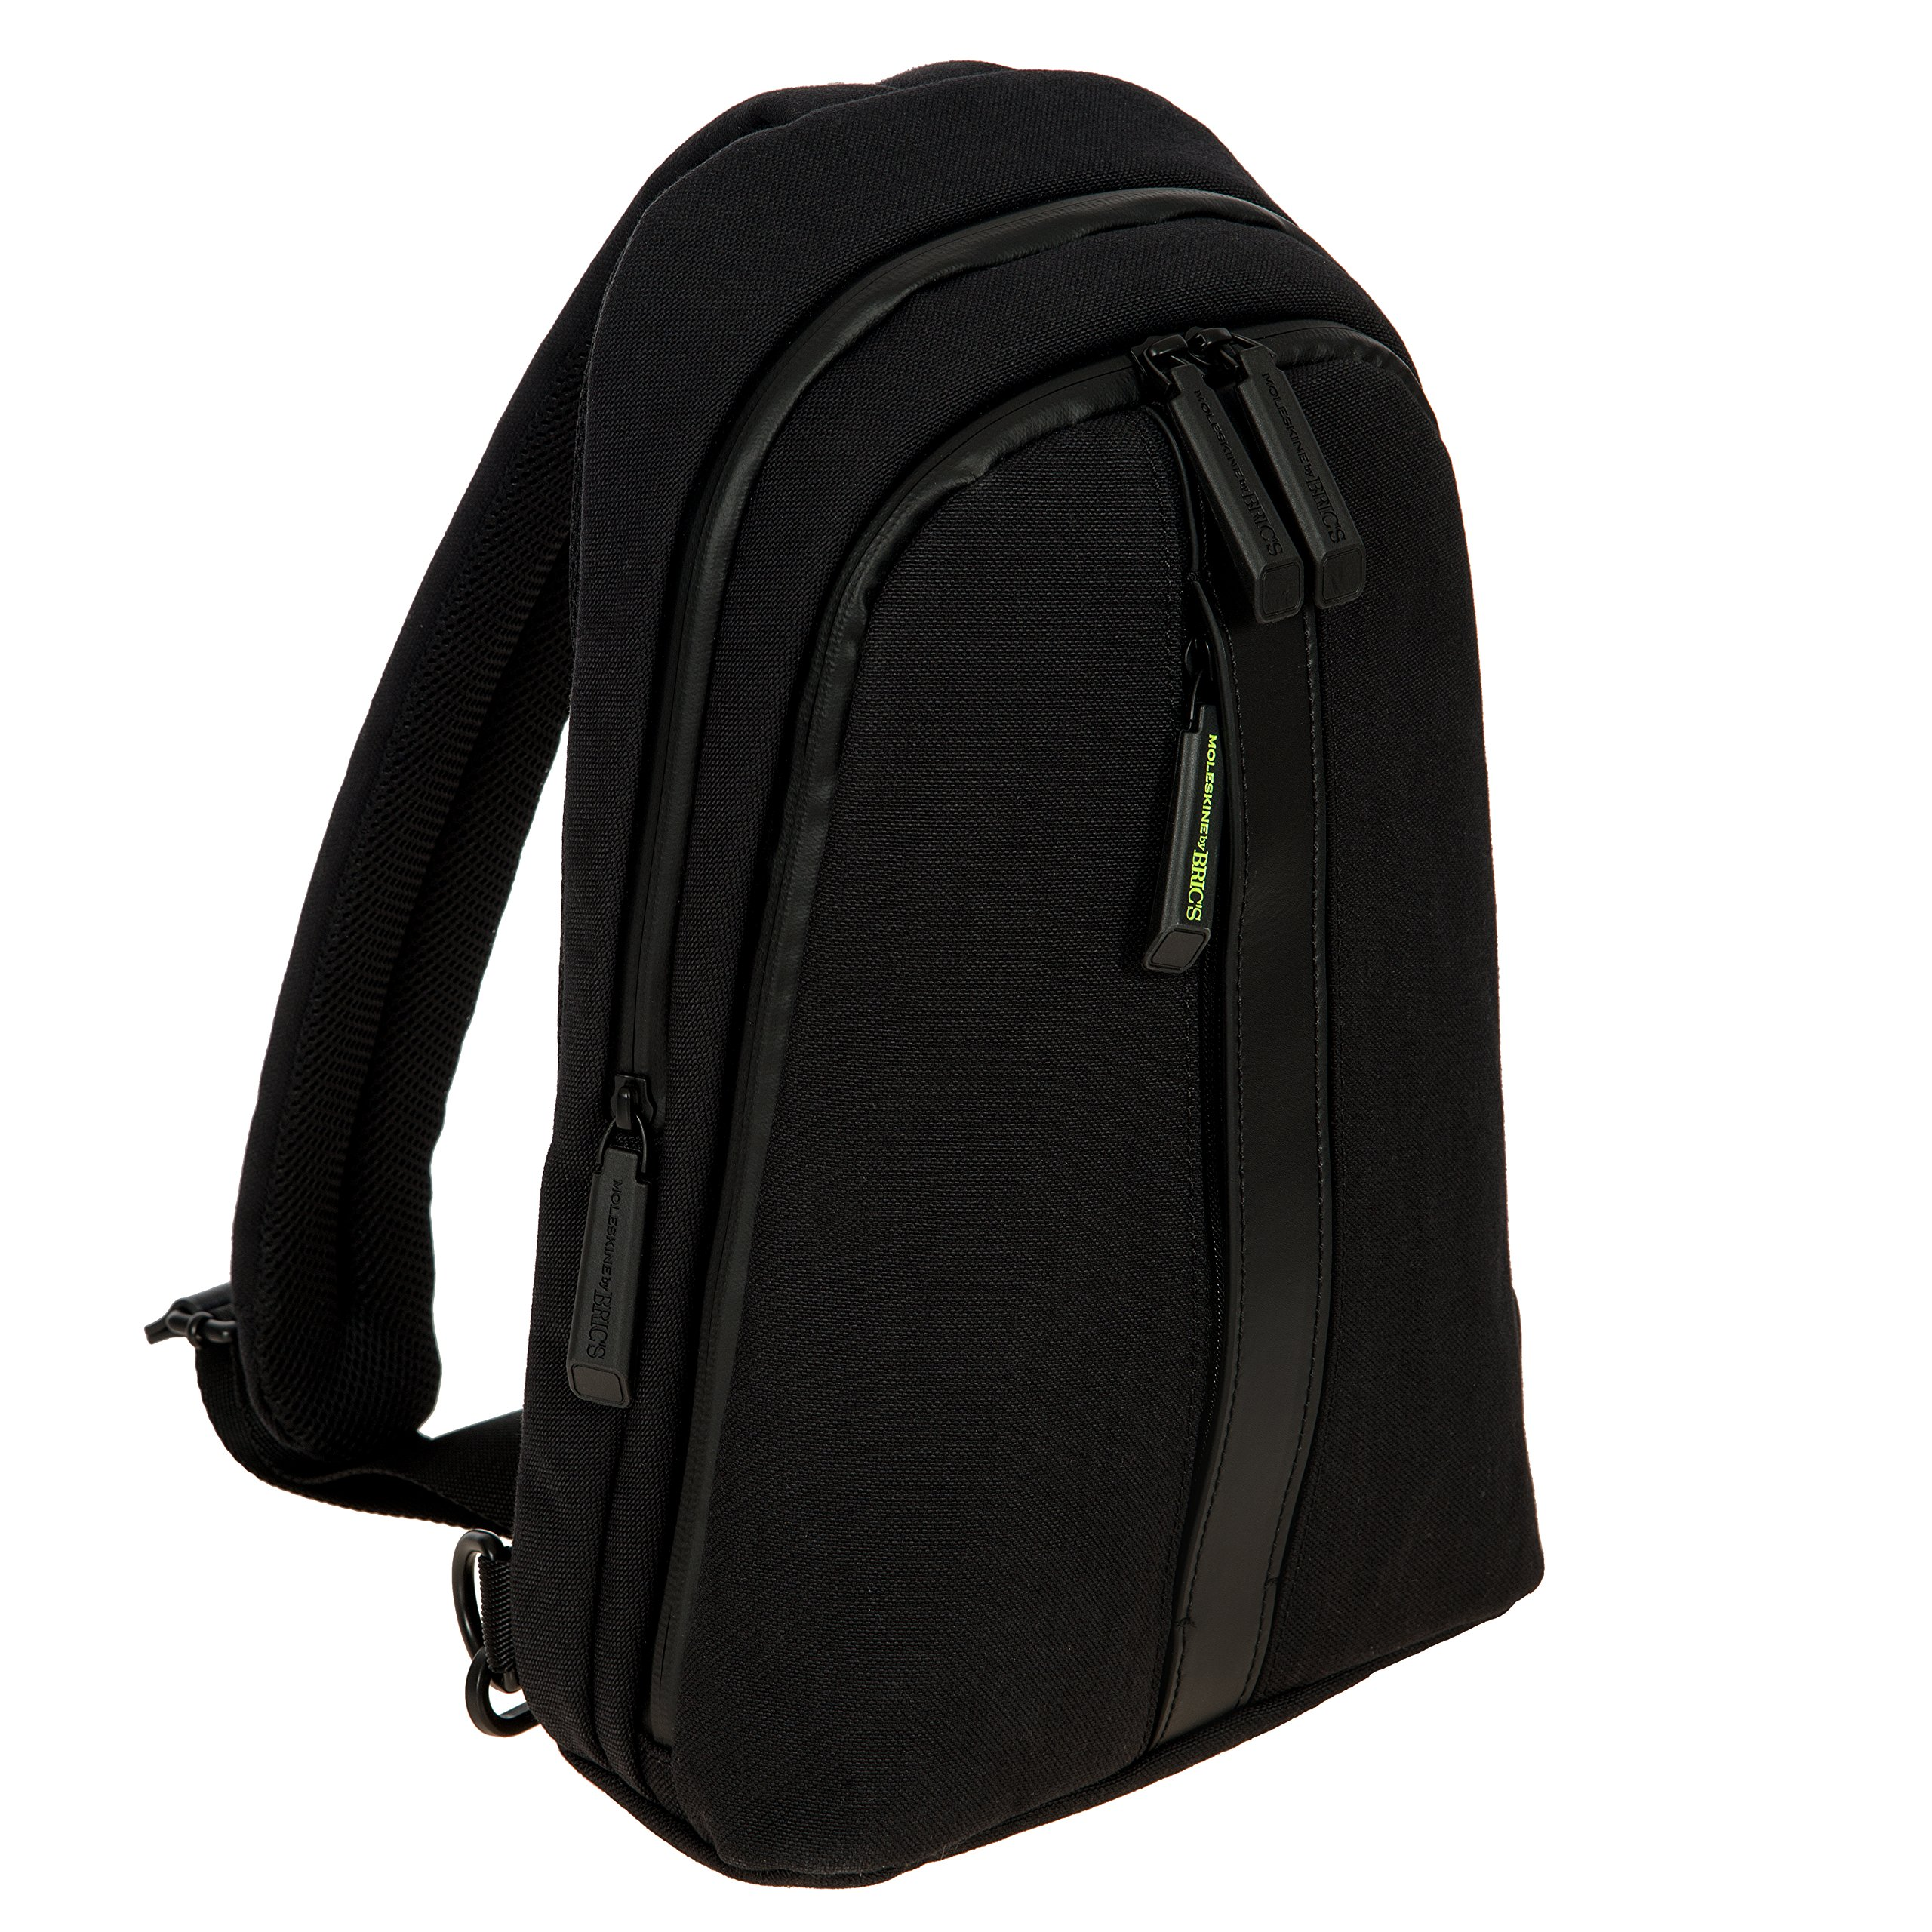 Bric's Men's Moleskine Bag Sling Backpack, Black, One Size by Bric's (Image #3)